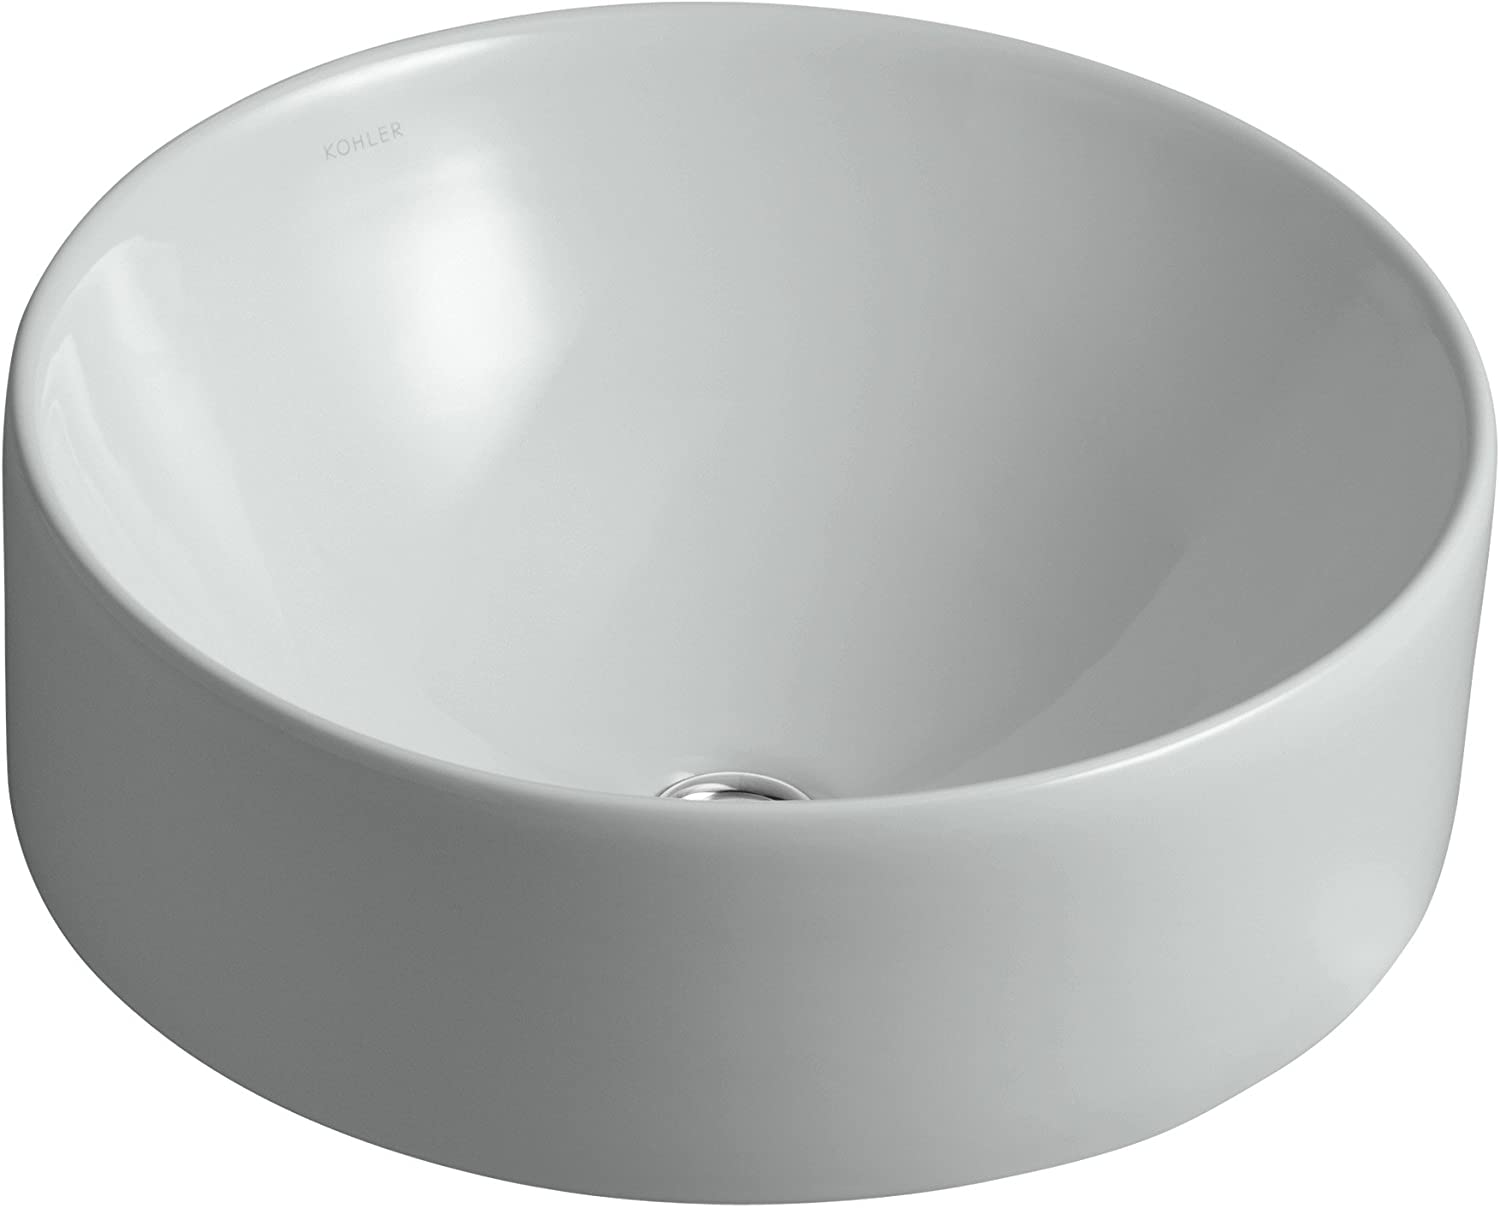 Kohler 14800-95 Vitreous china Above Round Bathroom counter Same day shipping Max 66% OFF Sink